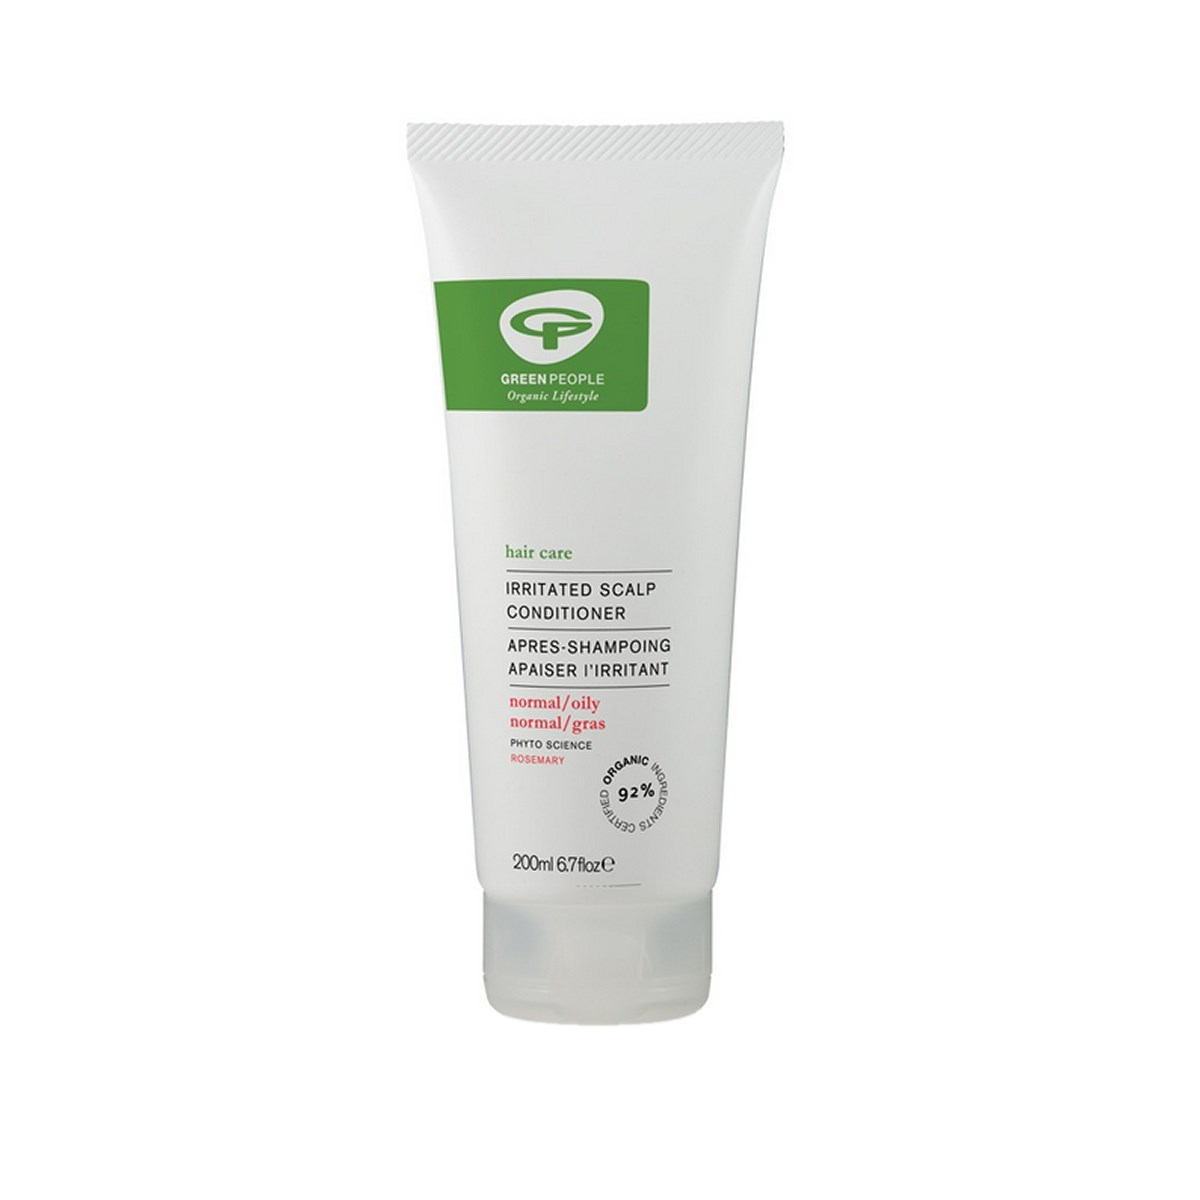 Green People Organic Irritated Scalp Conditioner